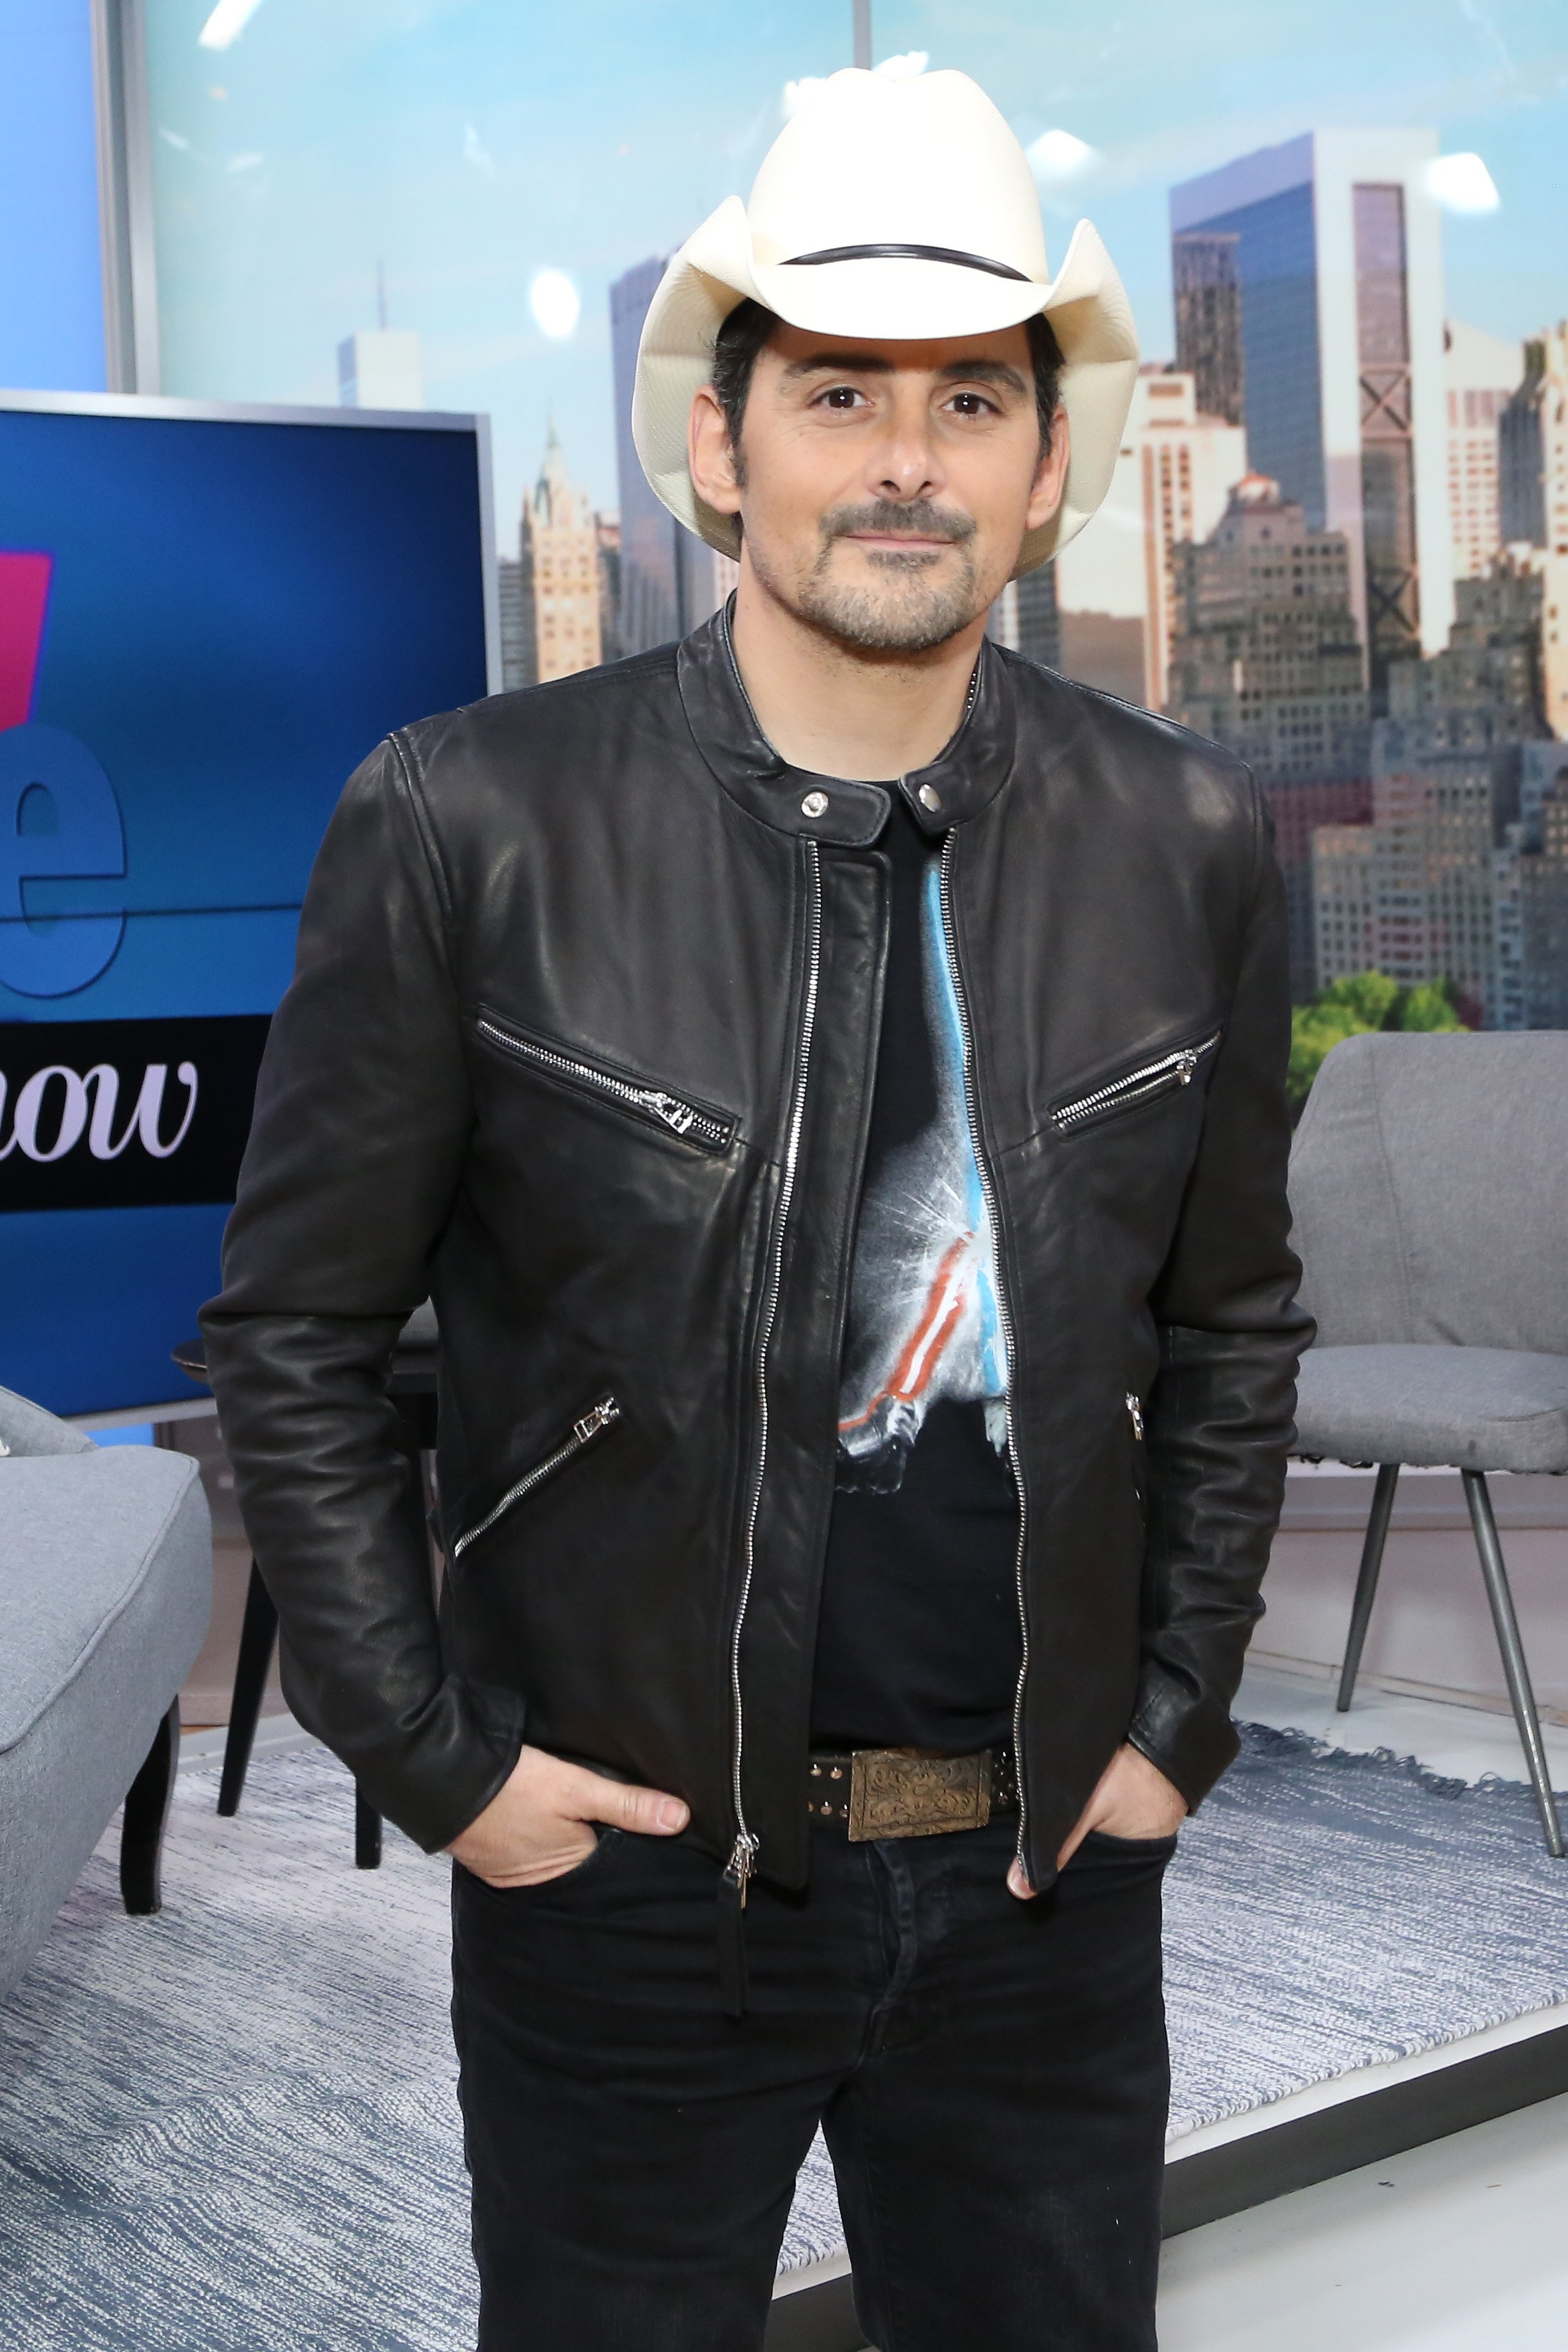 Brad Paisley visits People Now on November 18, 2019, in New York, United States. | Source: Getty Images